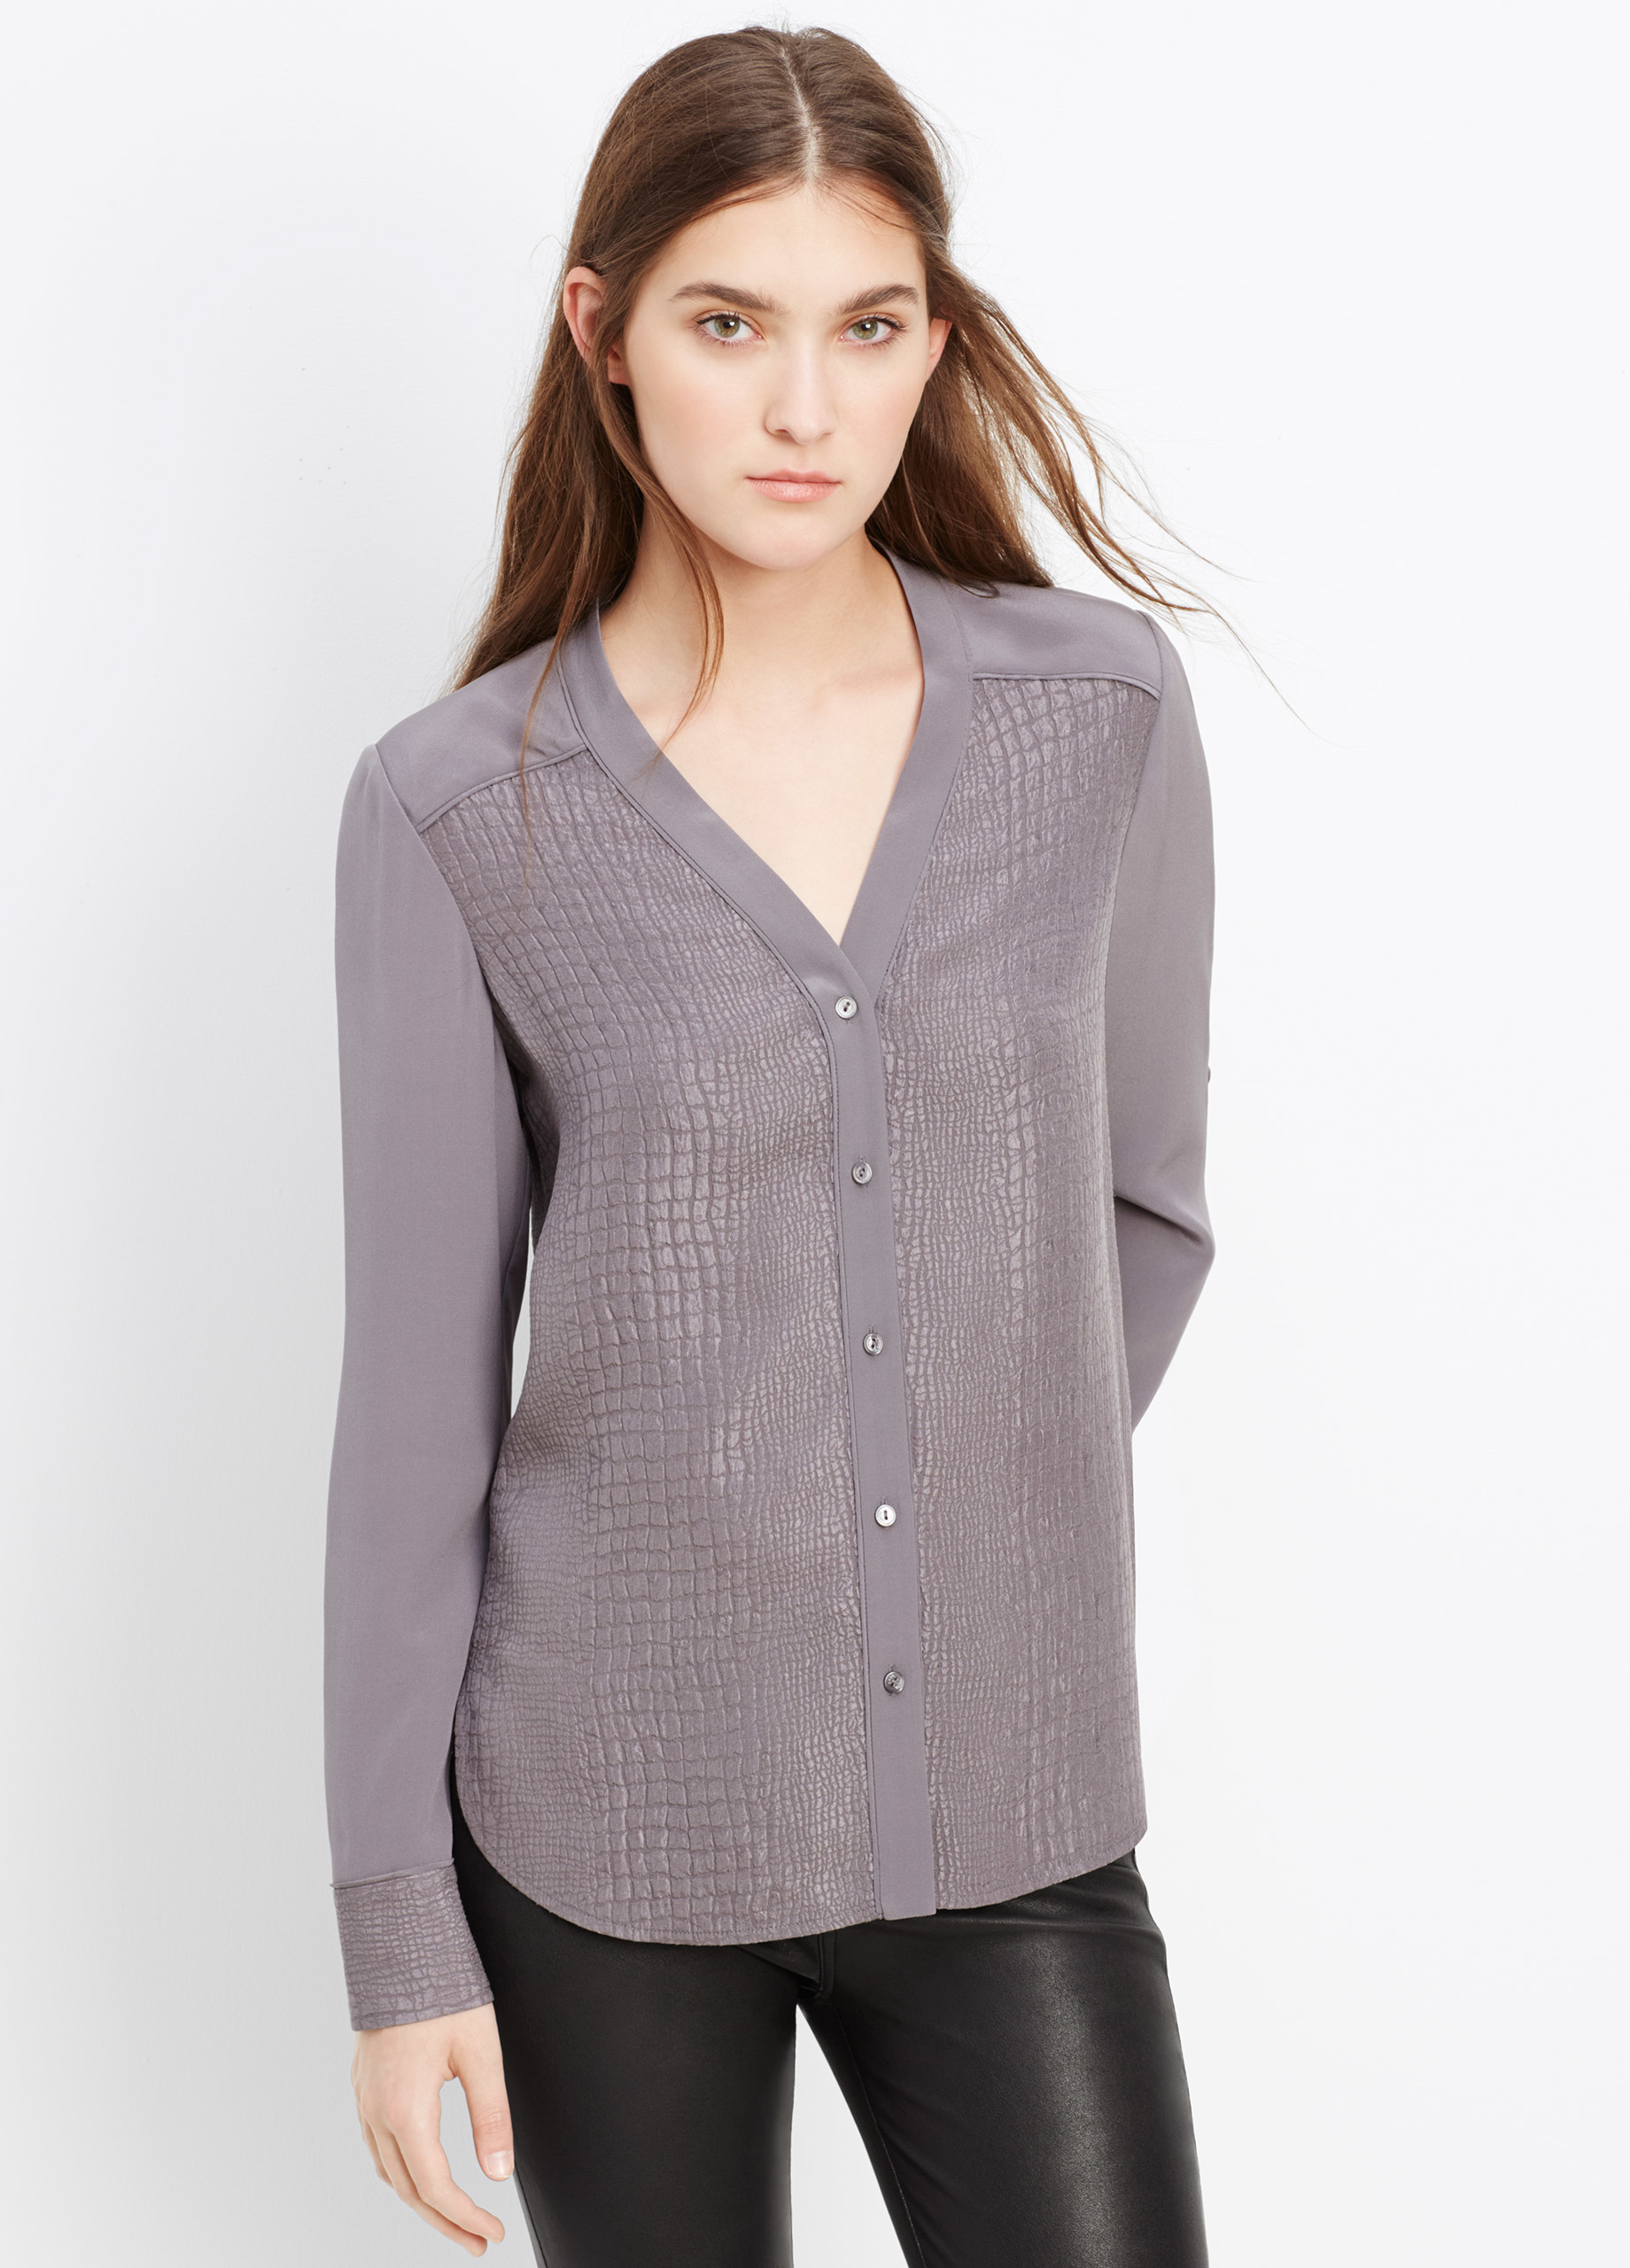 Vince Silk Croc Jacquard Blouse In Gray Lyst